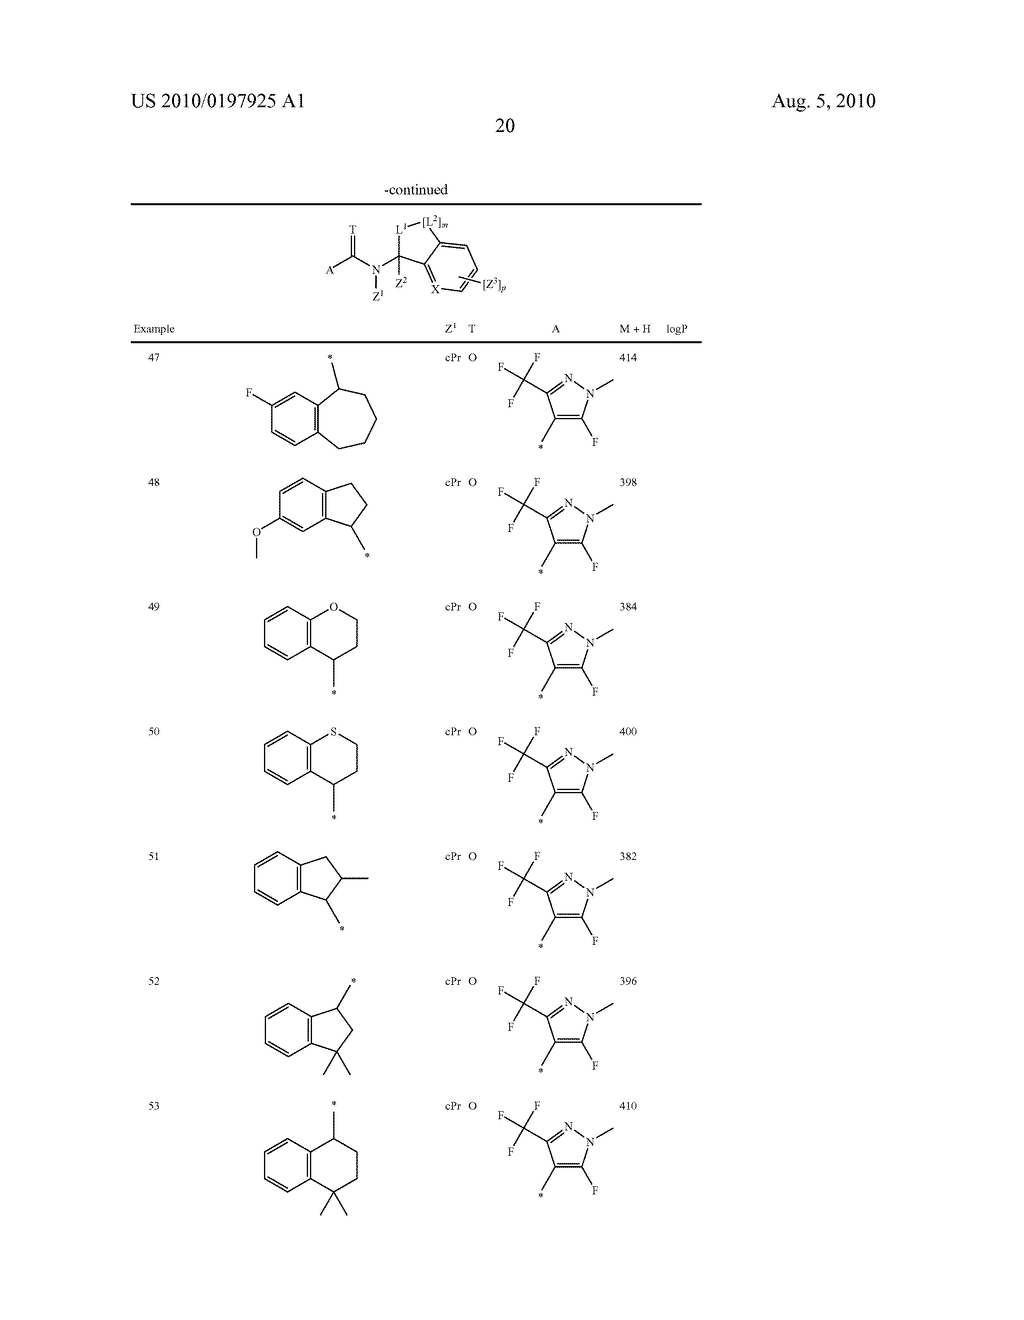 FUNGICIDE N-CYCLOALKYL-N-BICYCLIC-CARBOXAMIDE DERIVATIVES - diagram, schematic, and image 21